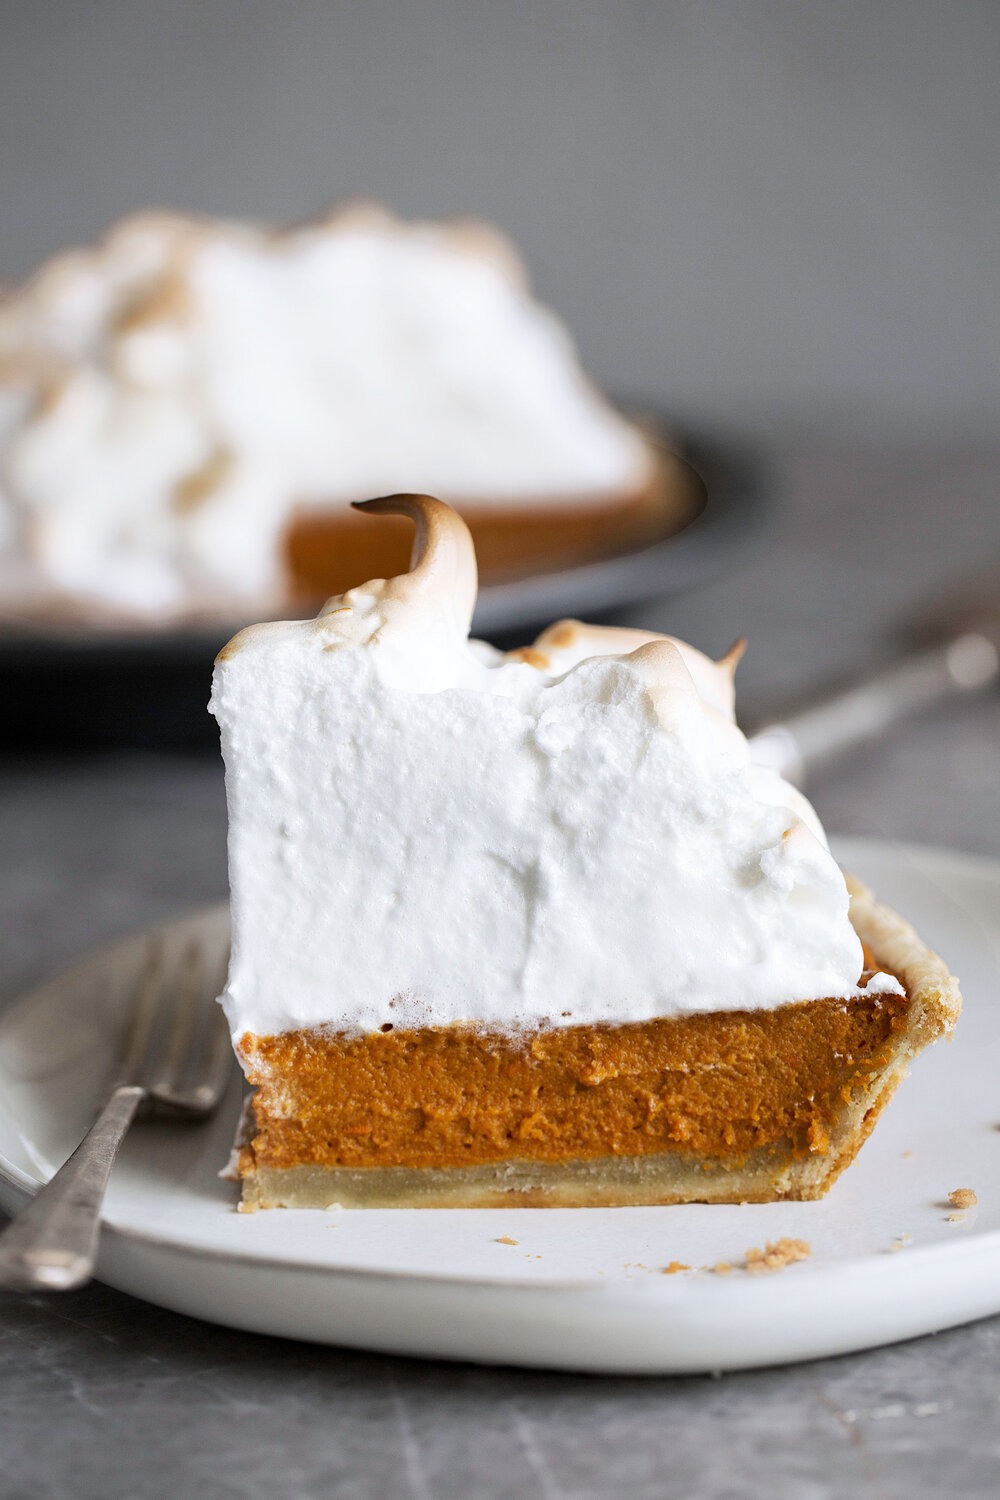 Sweet Potato Pie with Toasted Meringue Topping